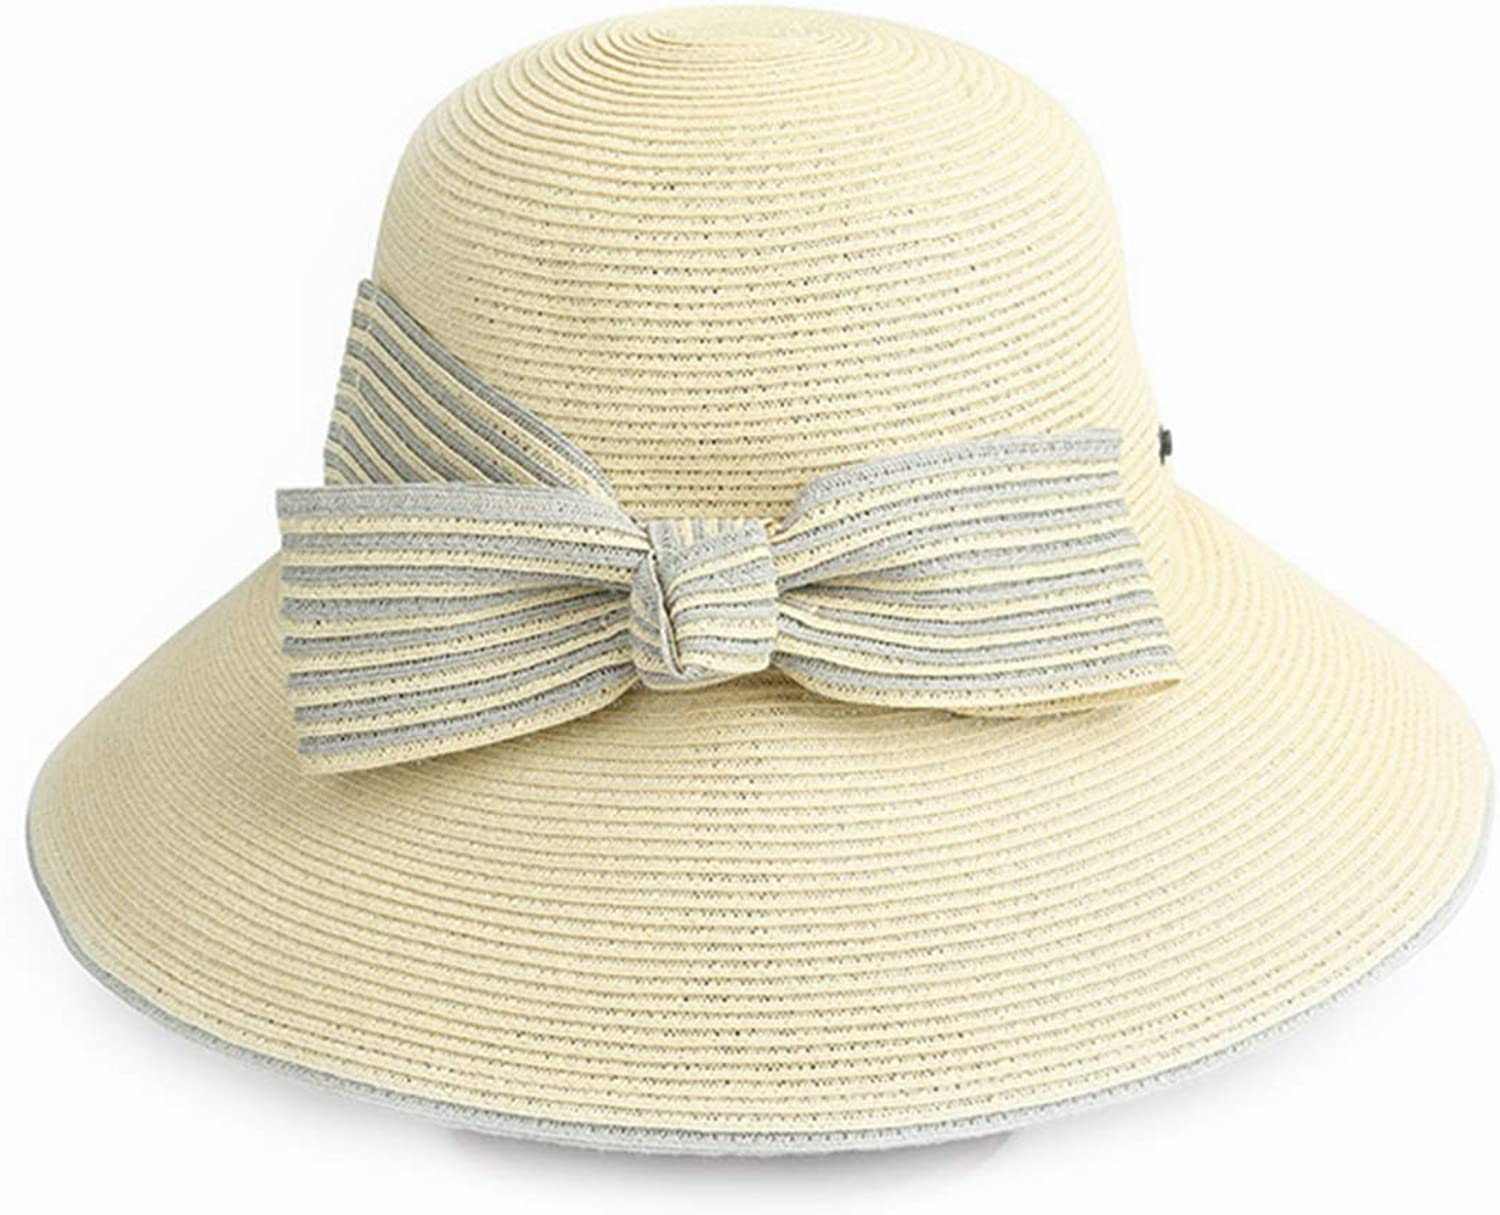 Ladies Straw Hat Spring Summer Large Size Foldable Straw Hat Straw Hat Beach UV Cut Lightweight Type Casual Outdoor Travel (color   Beige)